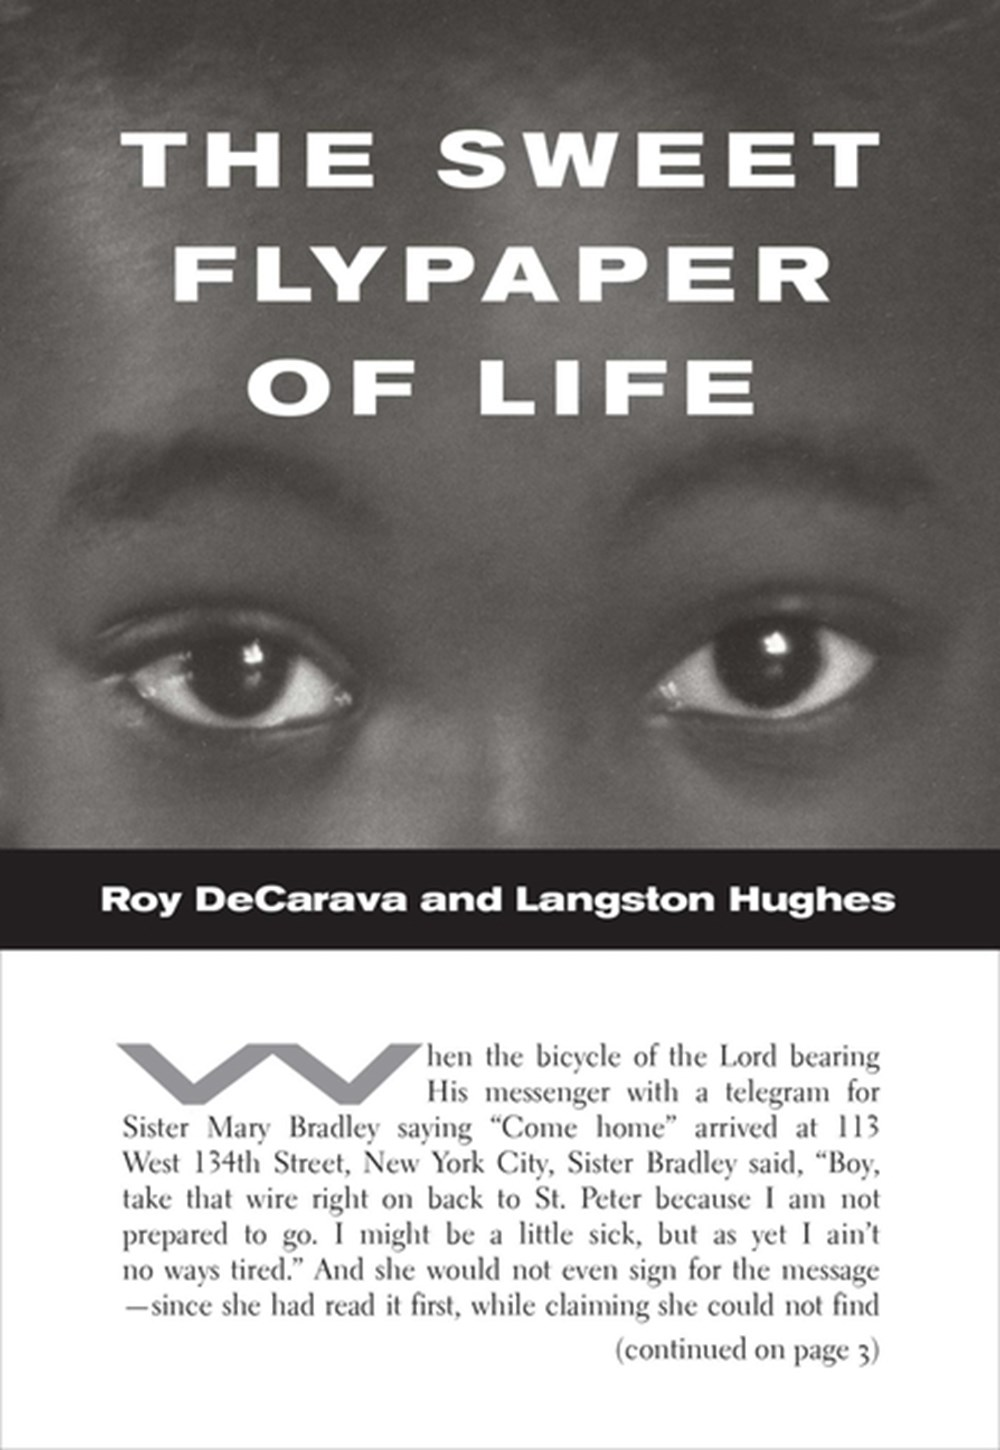 Roy Decarava and Langston Hughes The Sweet Flypaper of Life